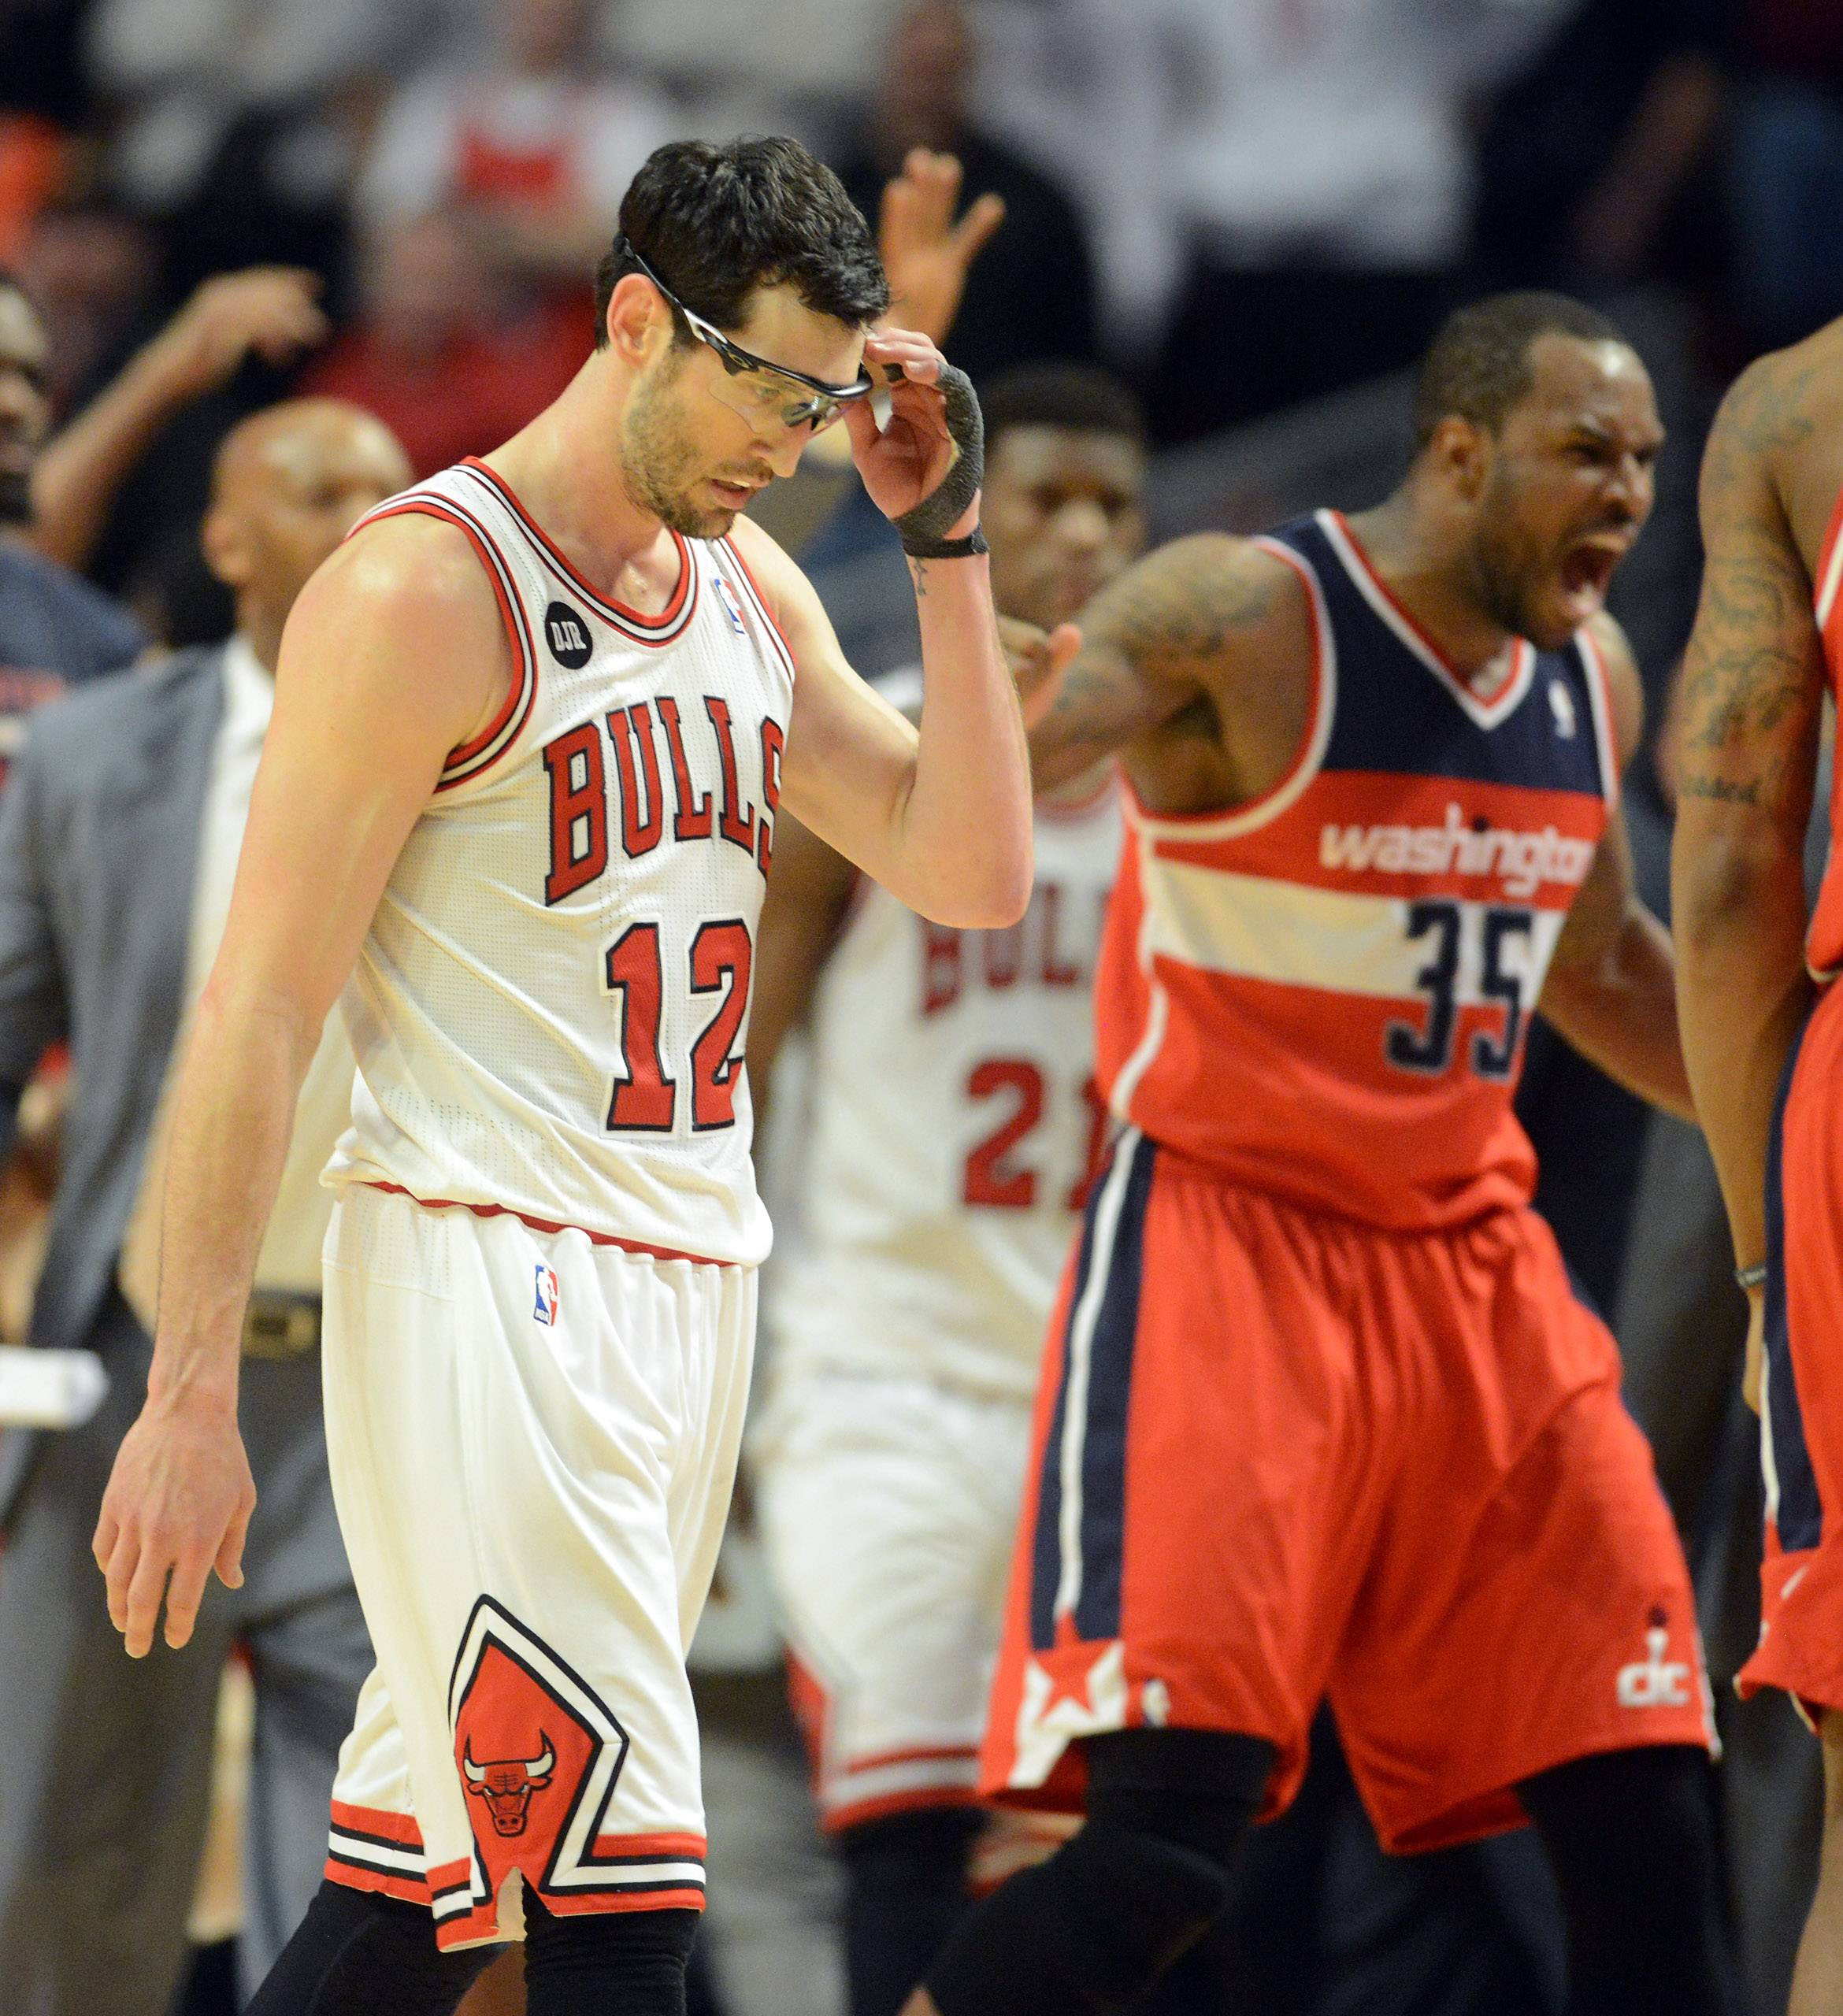 Chicago Bulls guard Kirk Hinrich (12) walks off the court as Washington Wizards forward Trevor Booker (35) celebrates after Hinrich missed a chance to tie the game with 2 free throws in overtime.